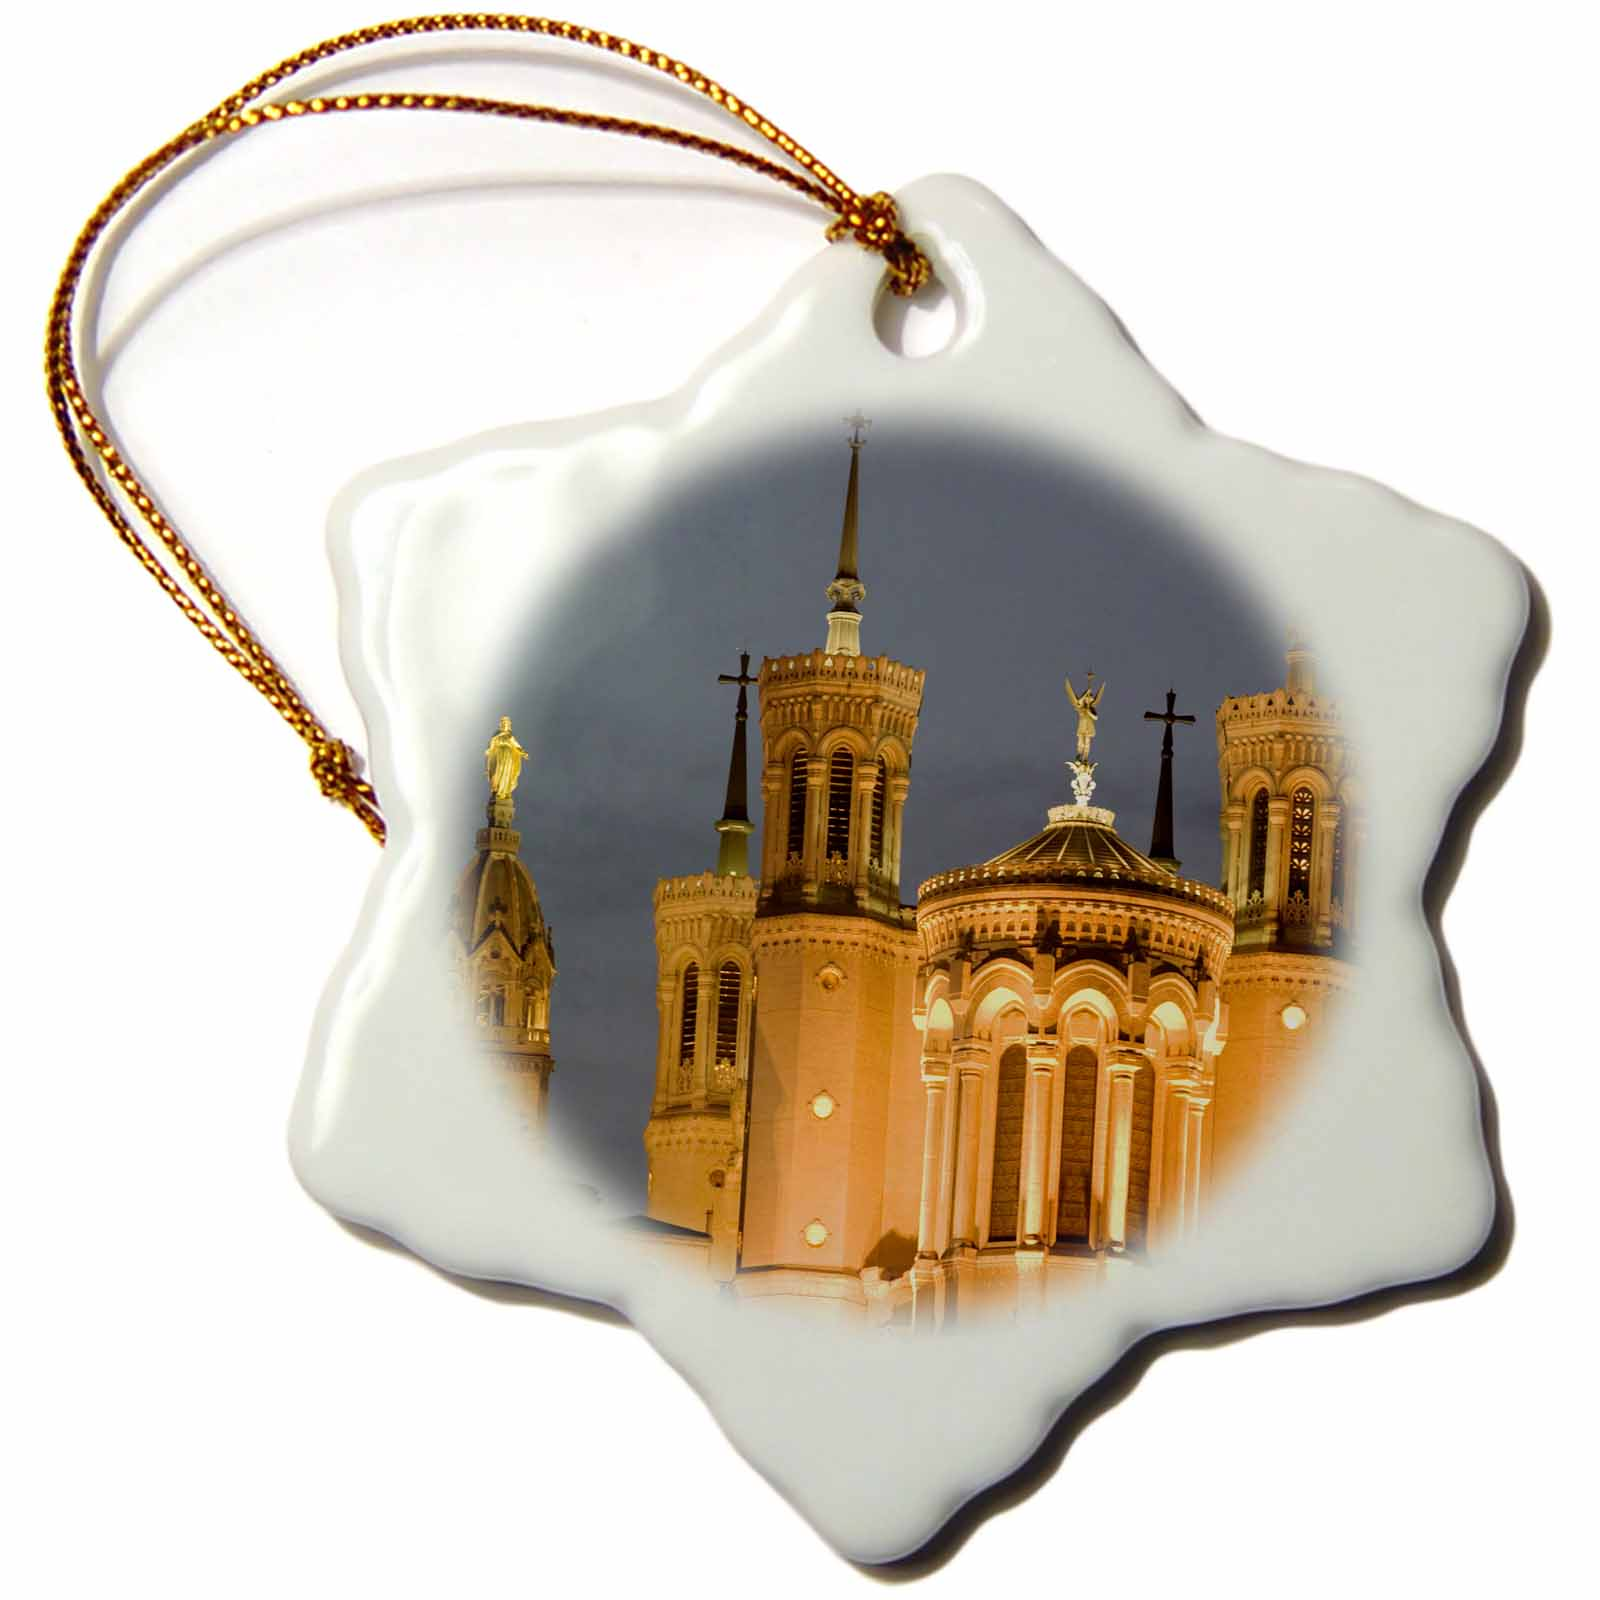 3dRose Cathedral, Notre Dame de Fourviere, Lyon, France - EU09 DBN0402 - David Barnes, Snowflake Ornament, Porcelain, 3-inch